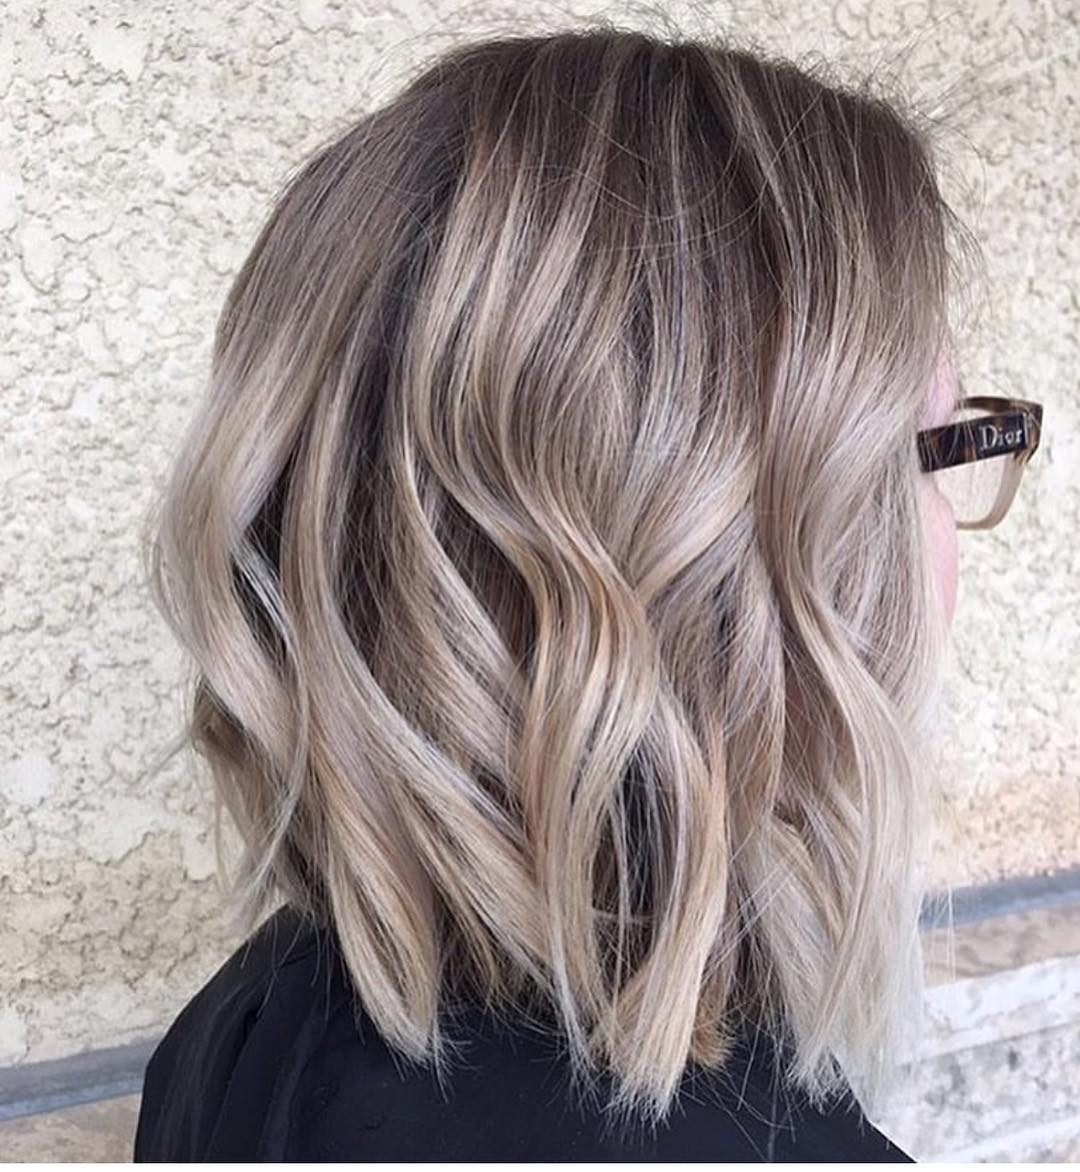 10 Balayage Ombre Hair Styles For Shoulder Length Hair Women Haircut 2021